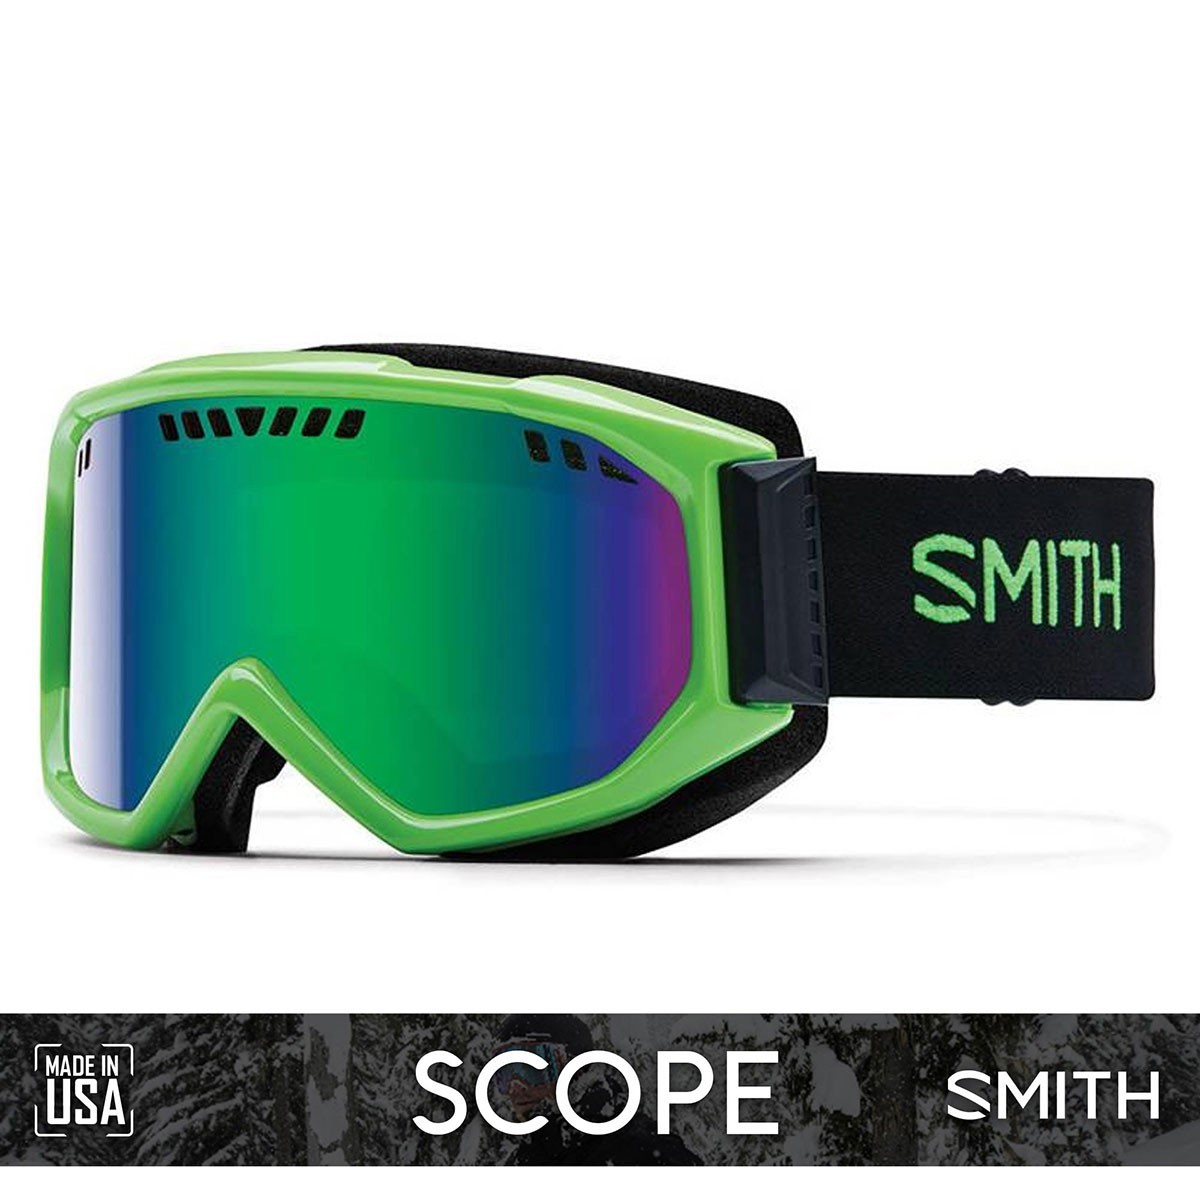 SMITH SCOPE Reactor | S3 GREEN SOL-X Mirror - Изображение - AQUAMATRIX